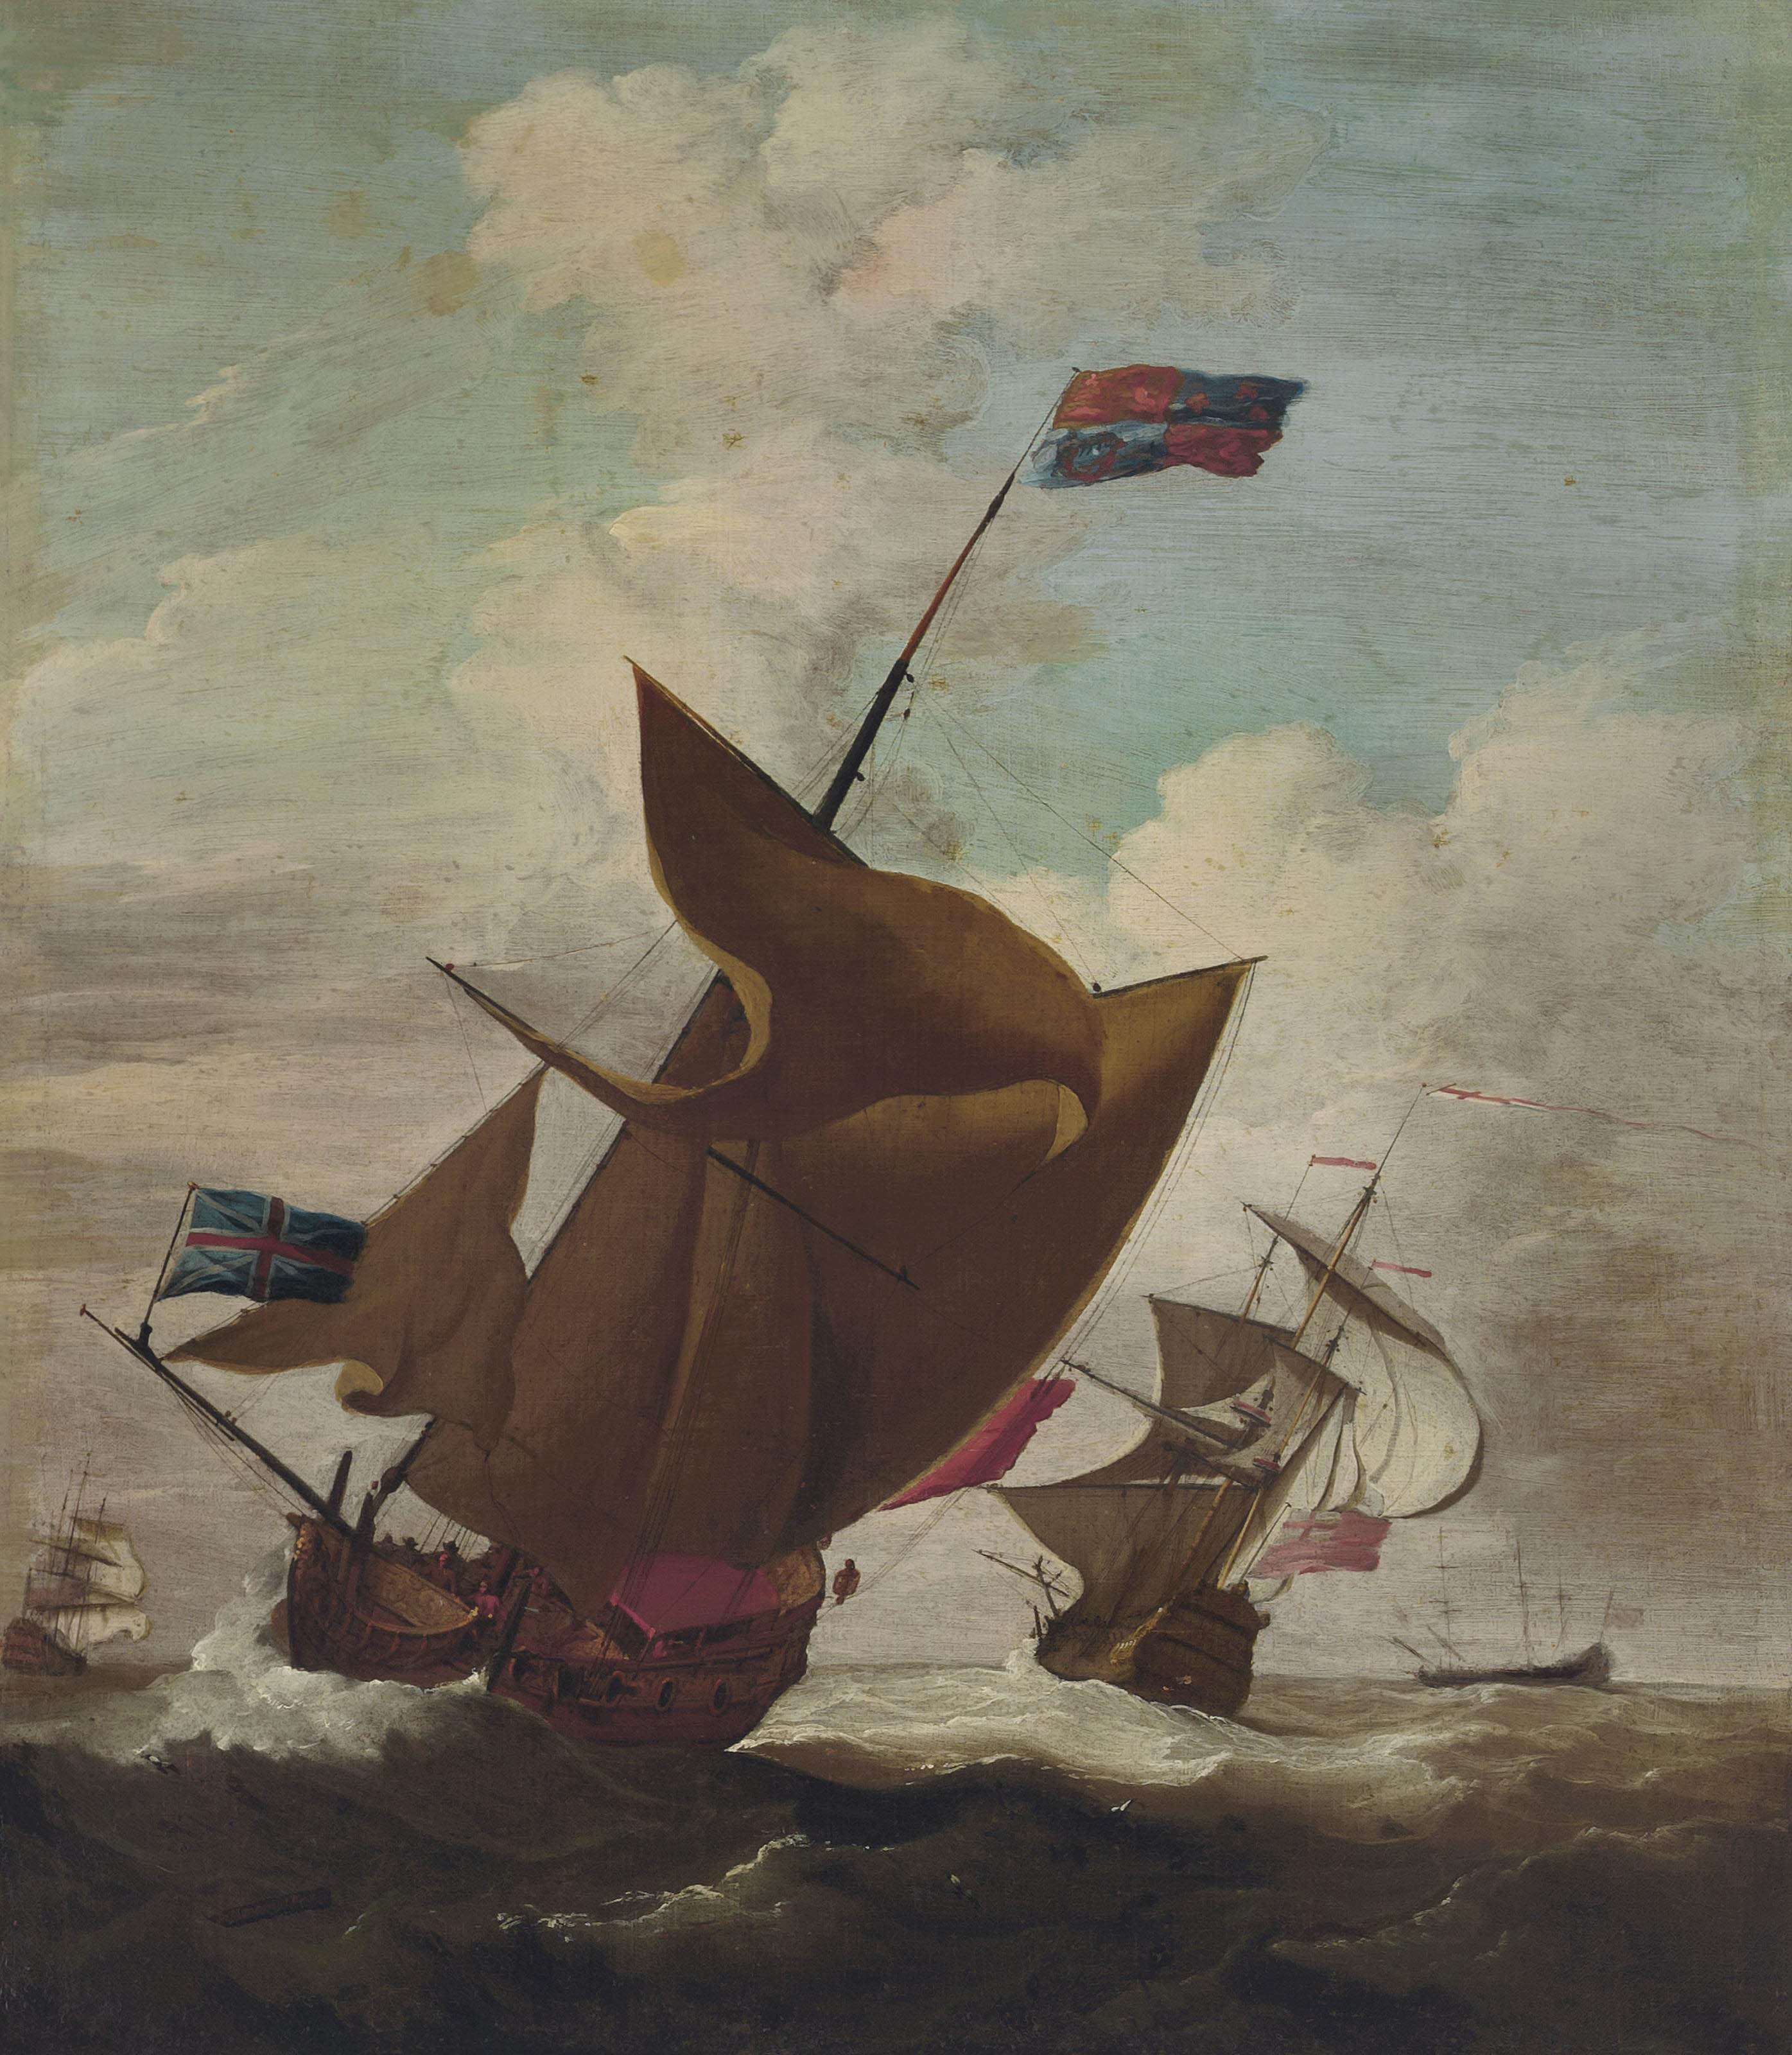 An English Royal Yacht, with the Lord High Admiral, Prince George (husband of Queen Anne, 1653-1708) aboard, amidst escorting warships in a stiff breeze possibly en route to Denmark, the Prince's home